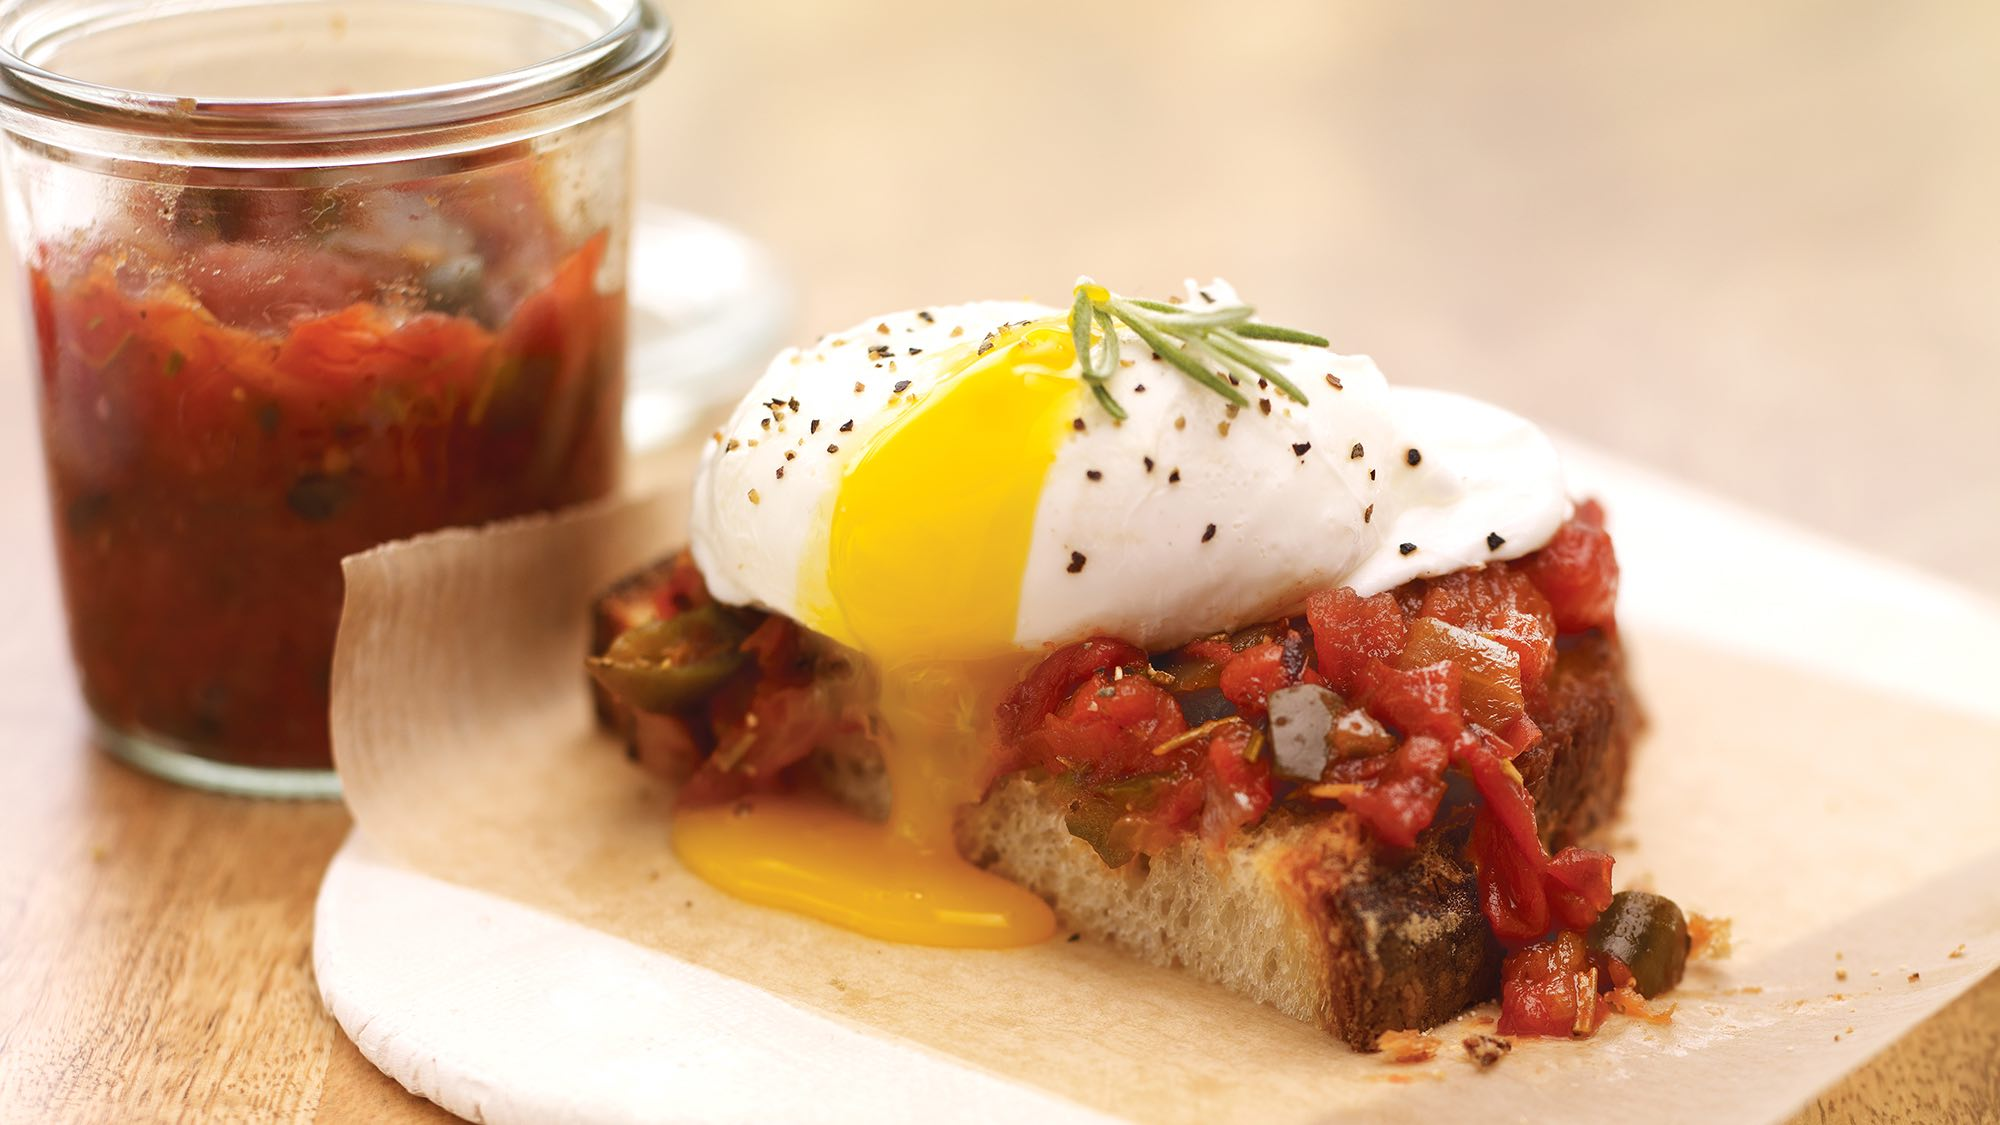 rosemary-smoked-tomato-jam-with-poached-egg.jpg